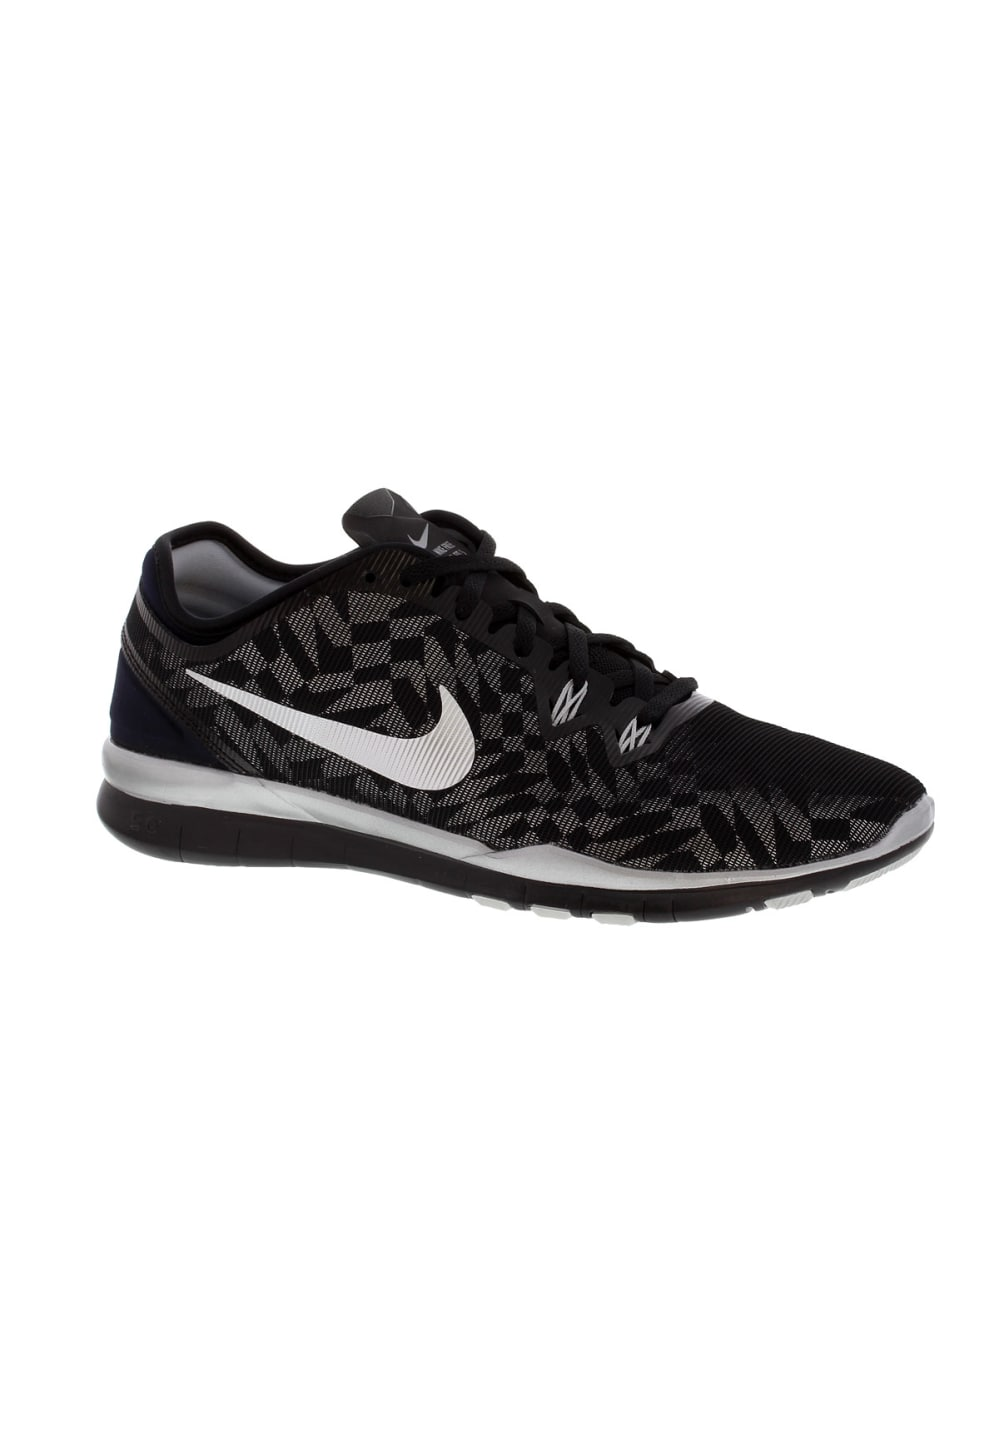 premium selection 8d57c 4f640 Nike Free 5.0 Tr Fit 5 Metallic - Running shoes for Women - Black